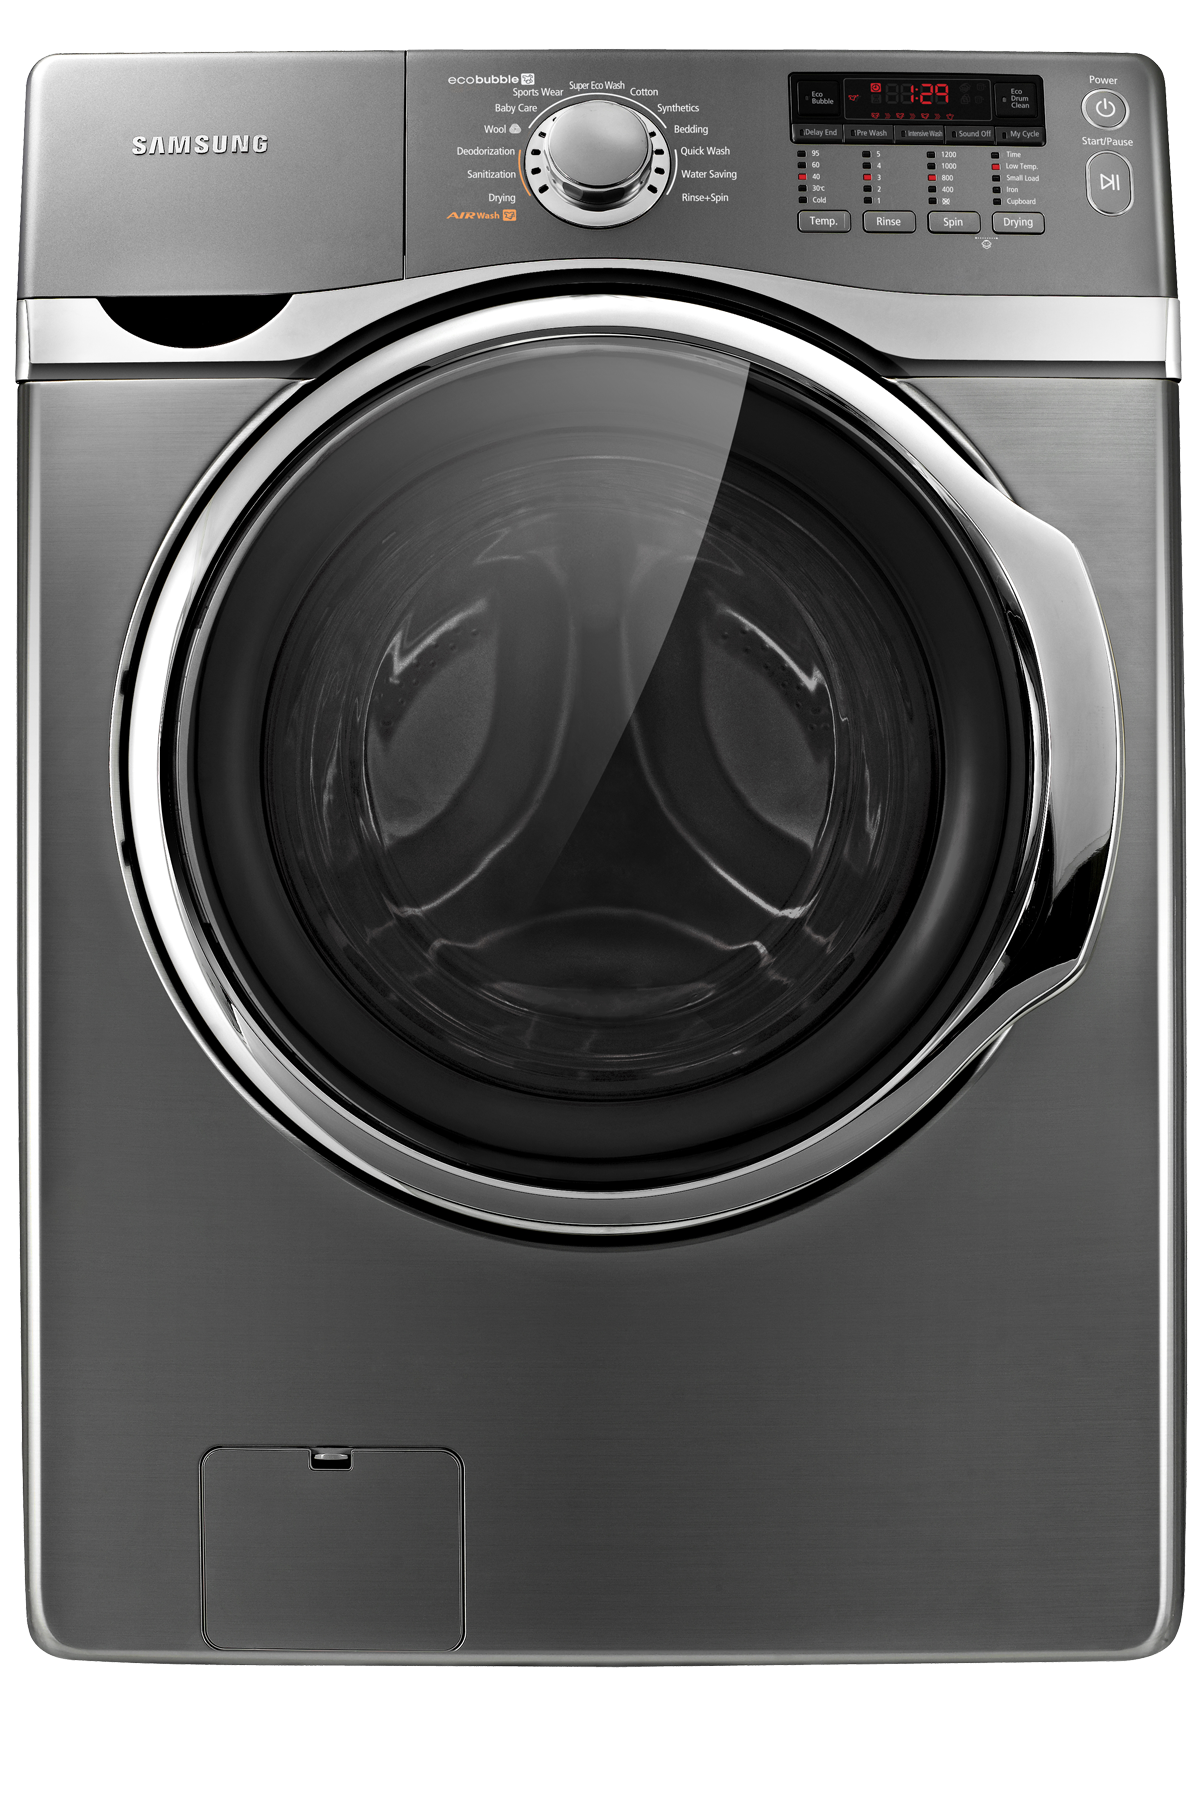 Washer/Dryer 10kg Wash/7kg Dry (WD1102XVM)